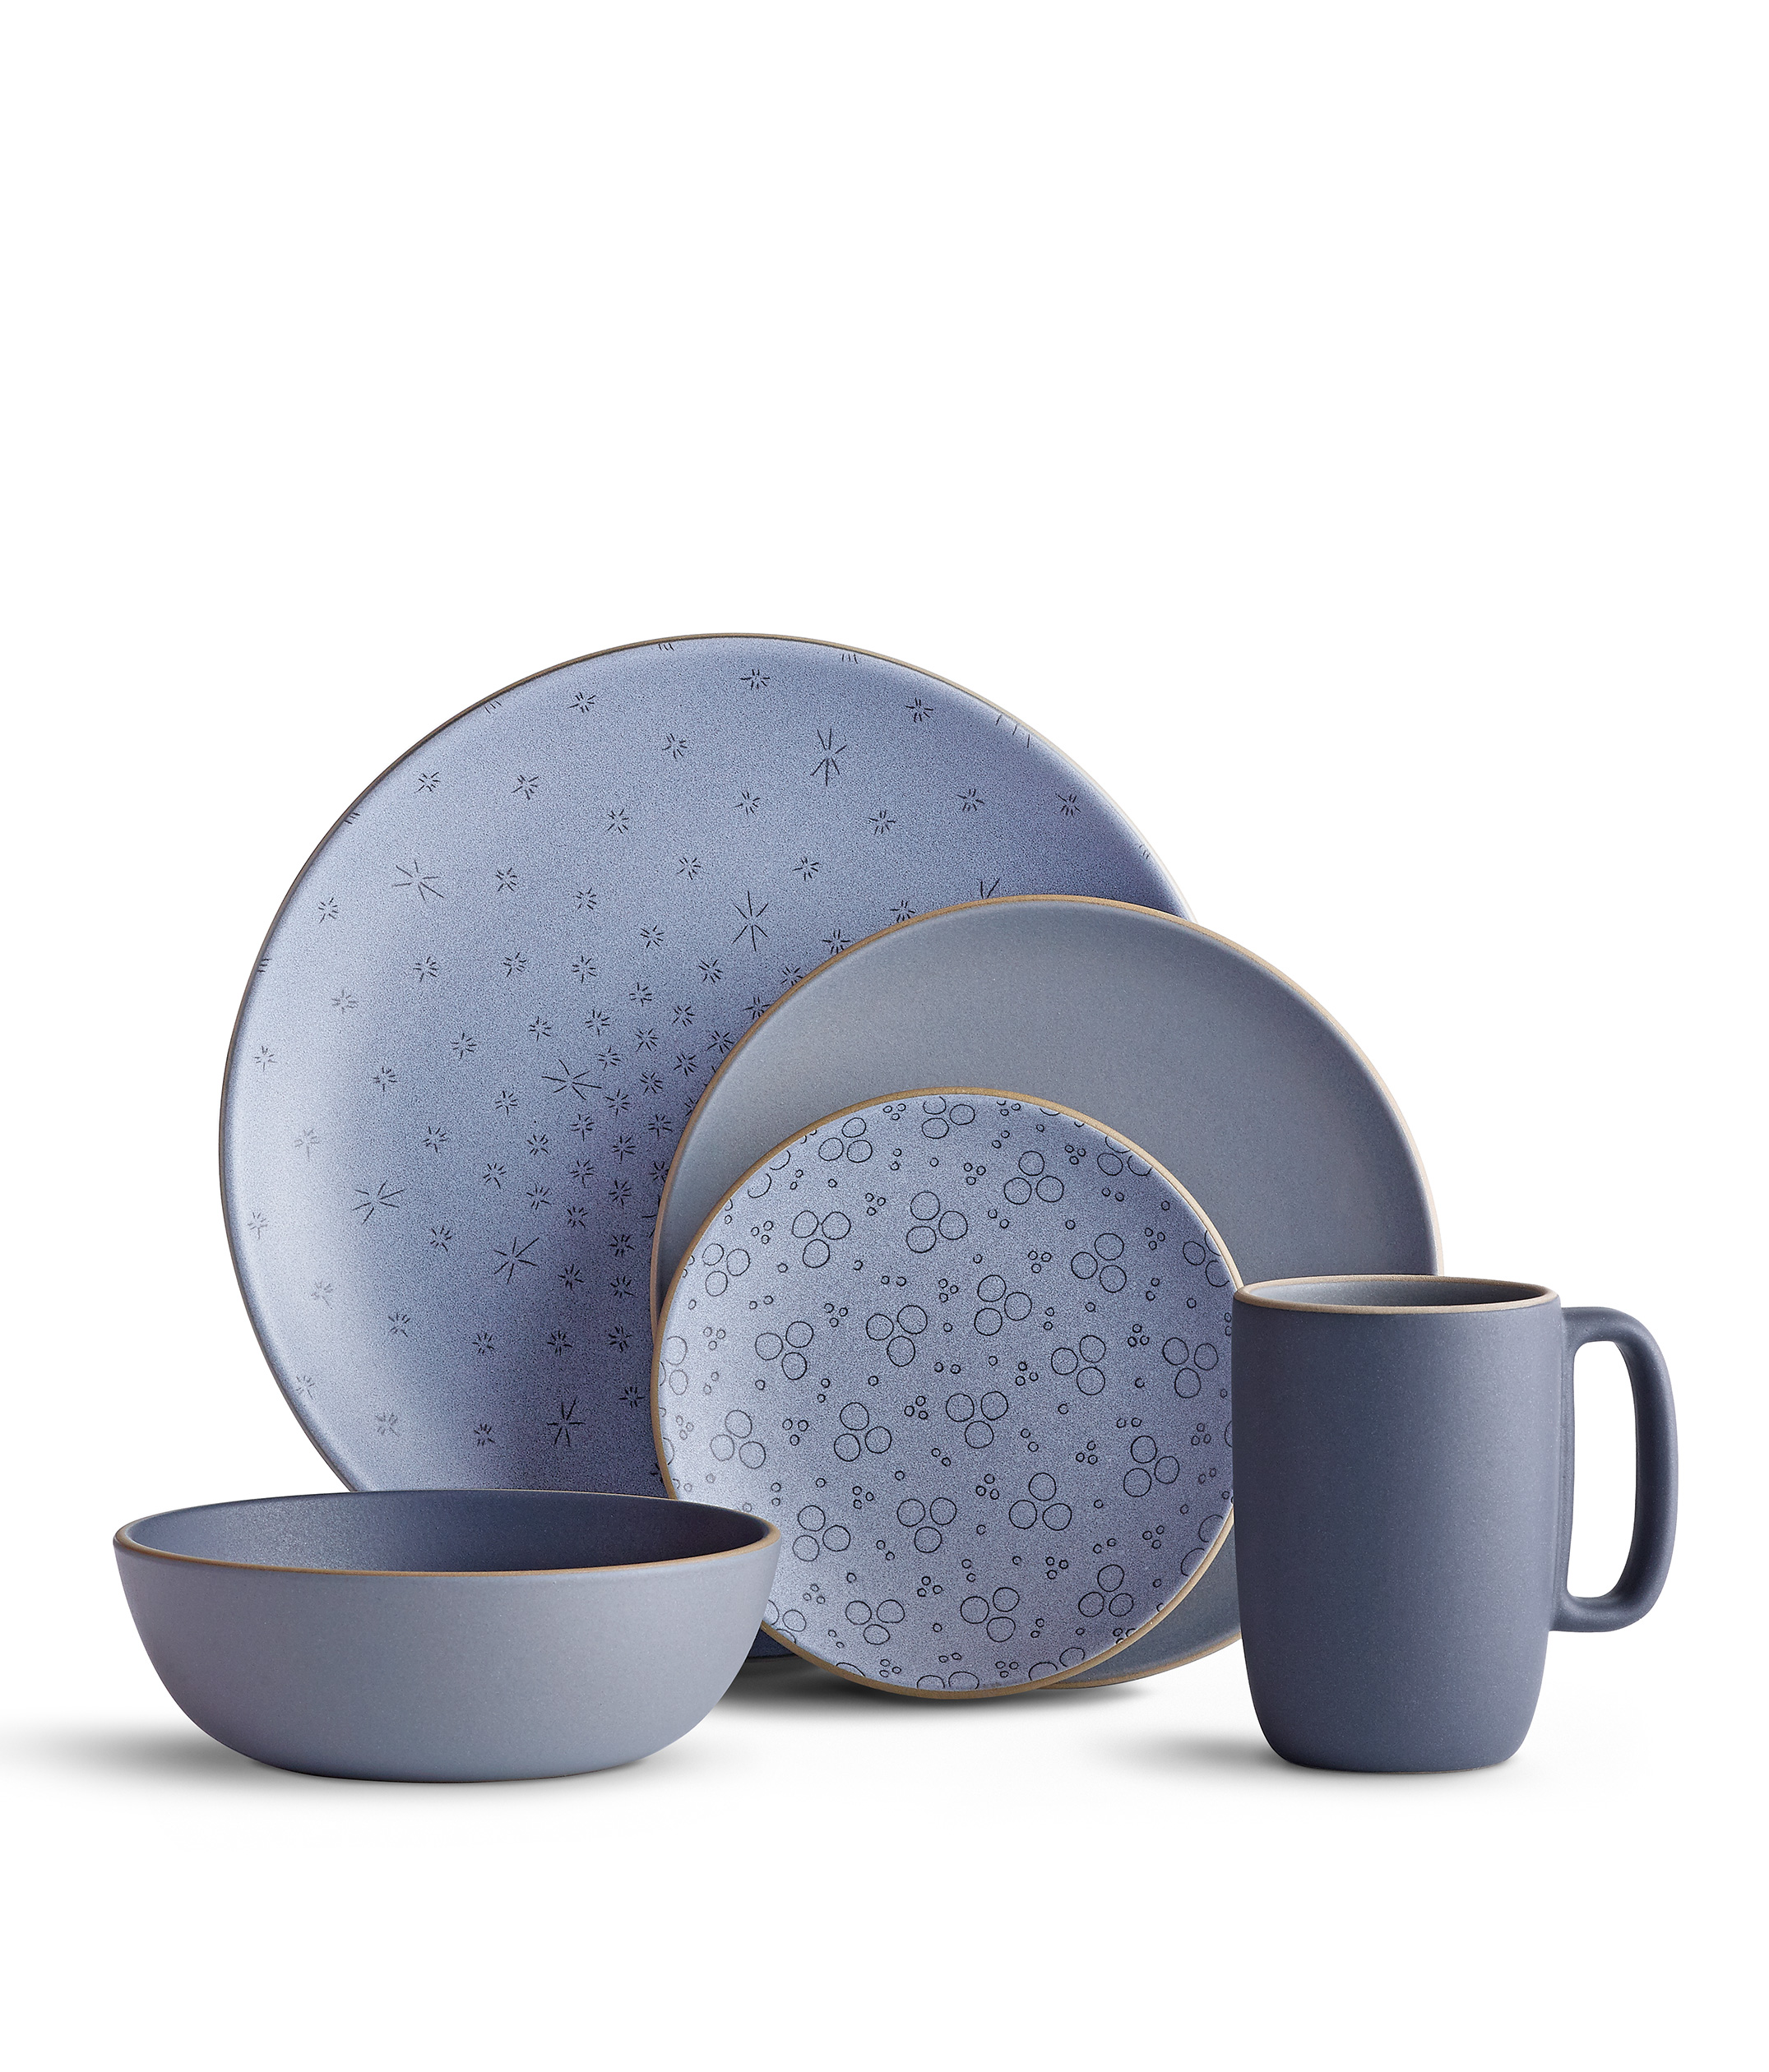 Stoneware Dinnerware Sets | Blue Stoneware Dinnerware Sets | Square Dinnerware Sets  sc 1 st  Stephaniegatschet.com & Dining Room: Stoneware Dinnerware Sets | Blue Stoneware Dinnerware ...